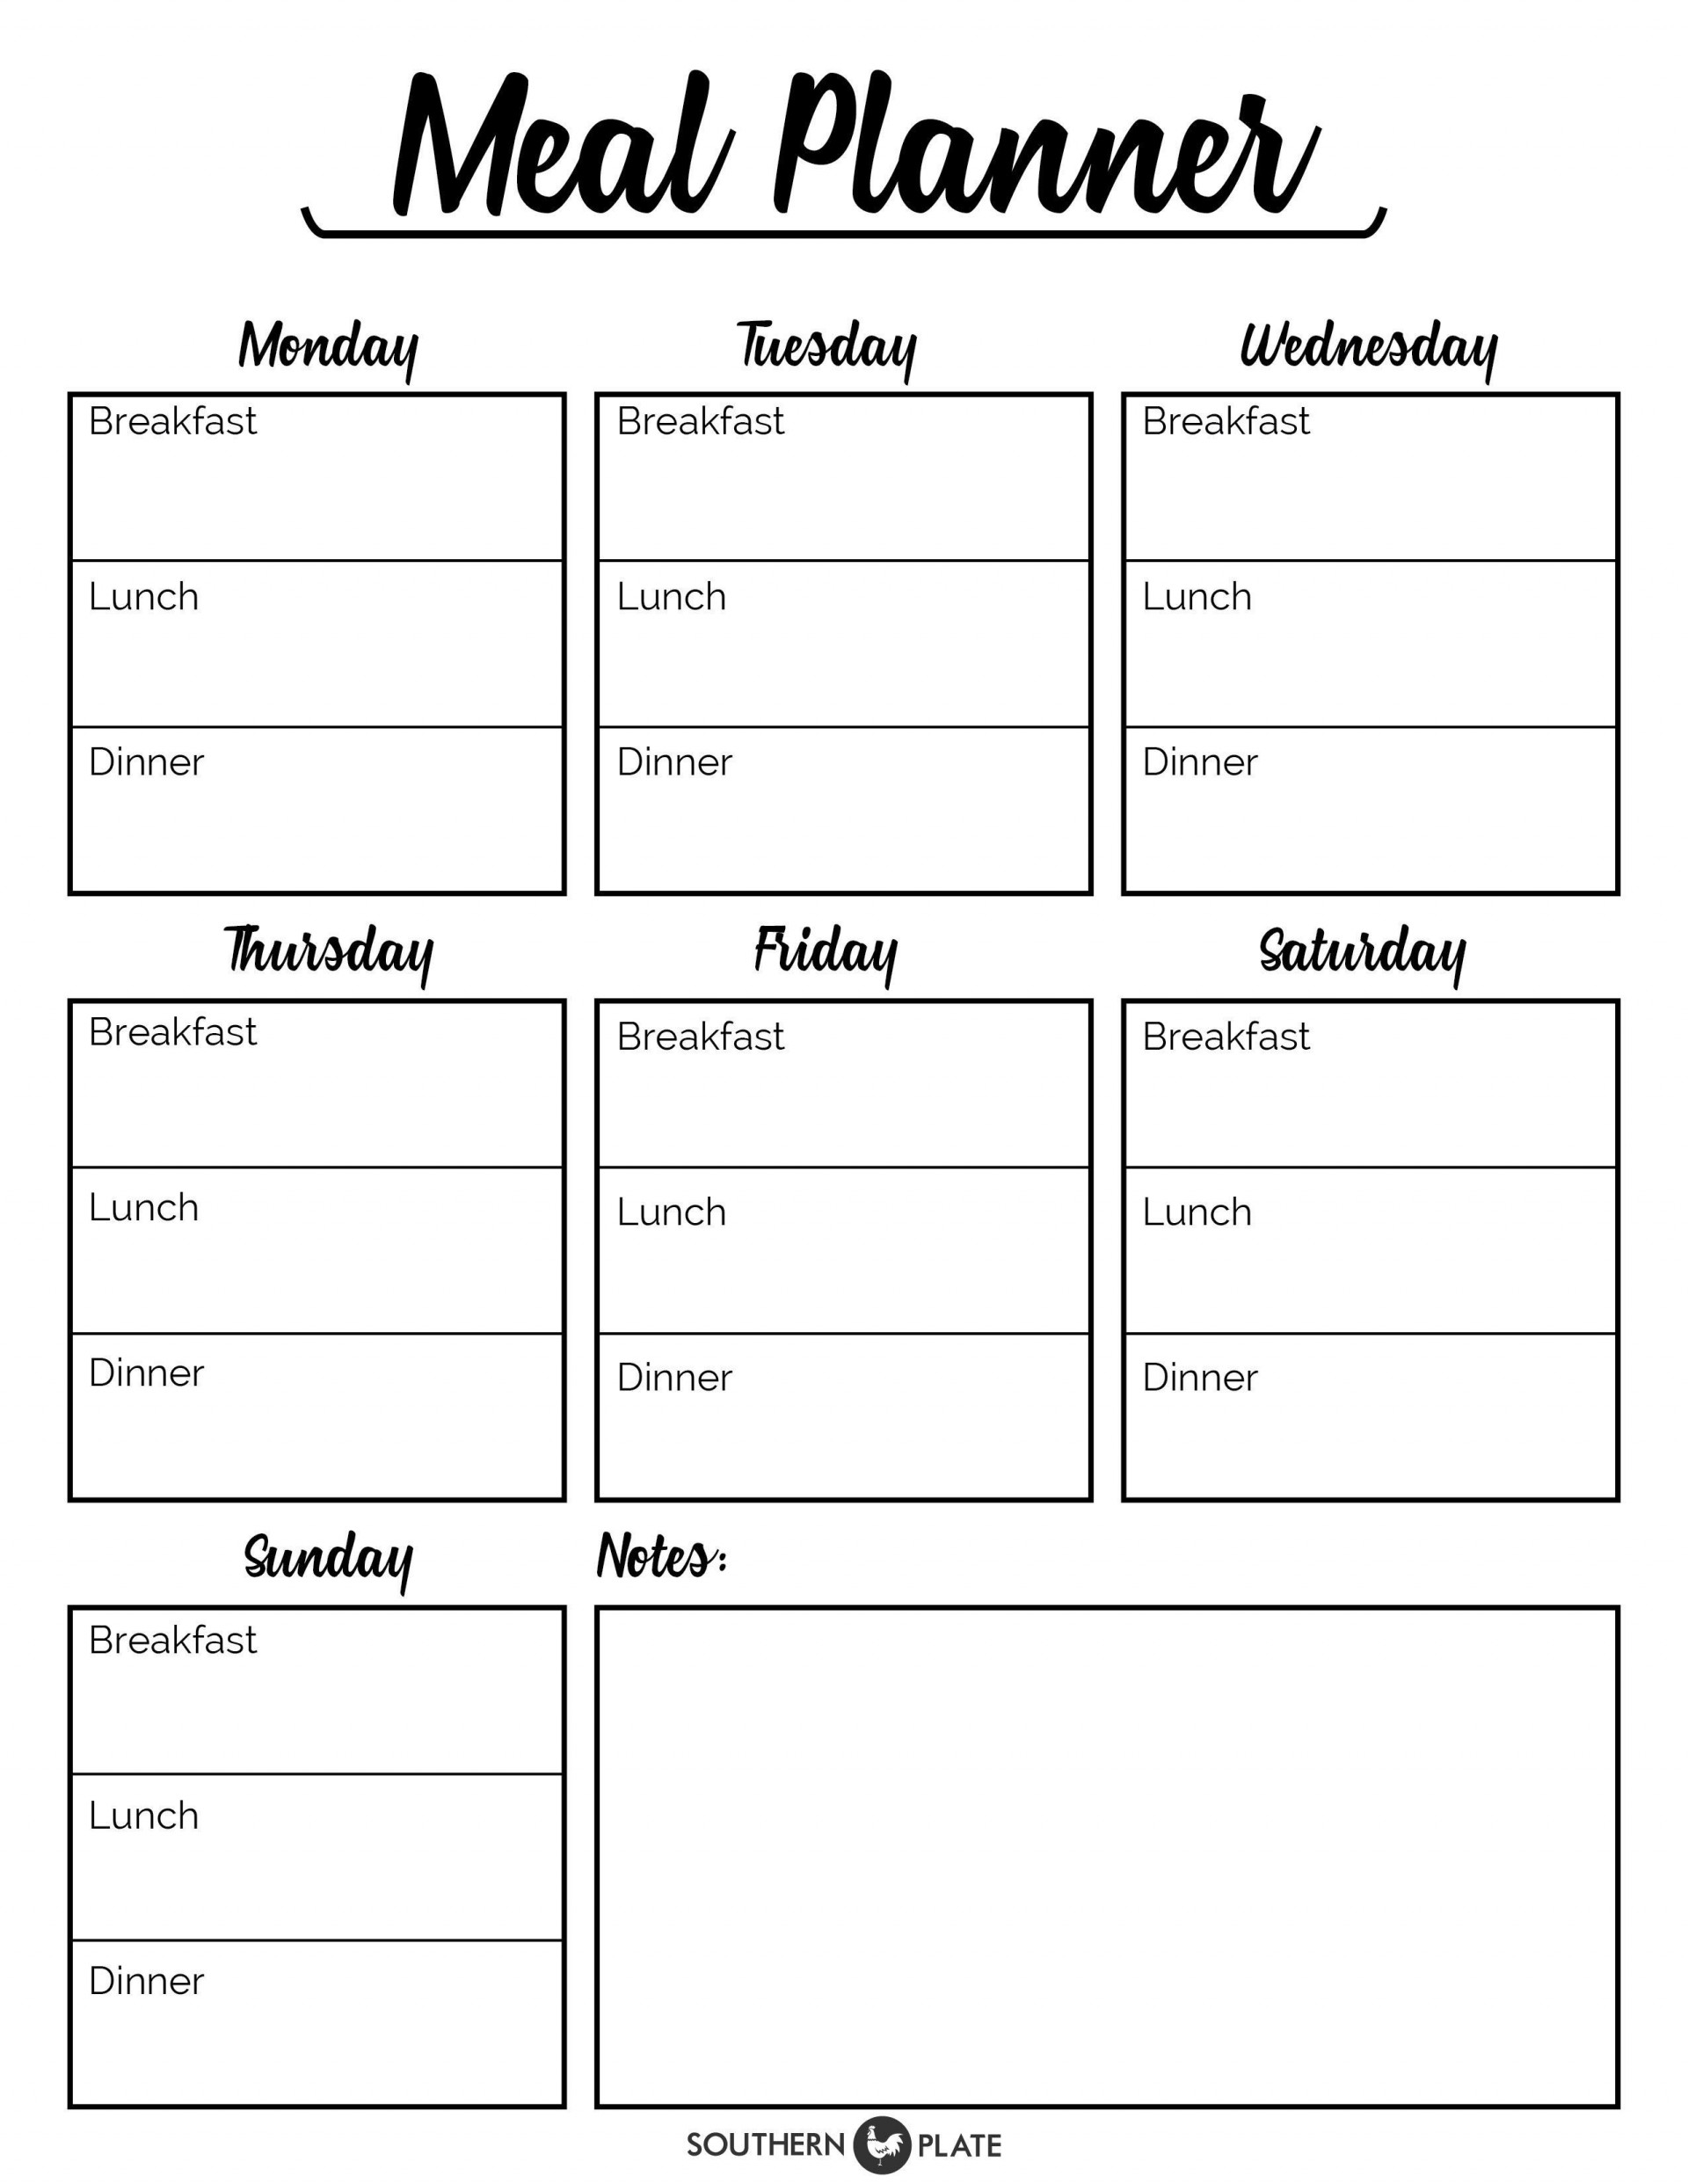 002 Rare Free Meal Planner Template Pdf Image  Weekly With Grocery List Monthly1920